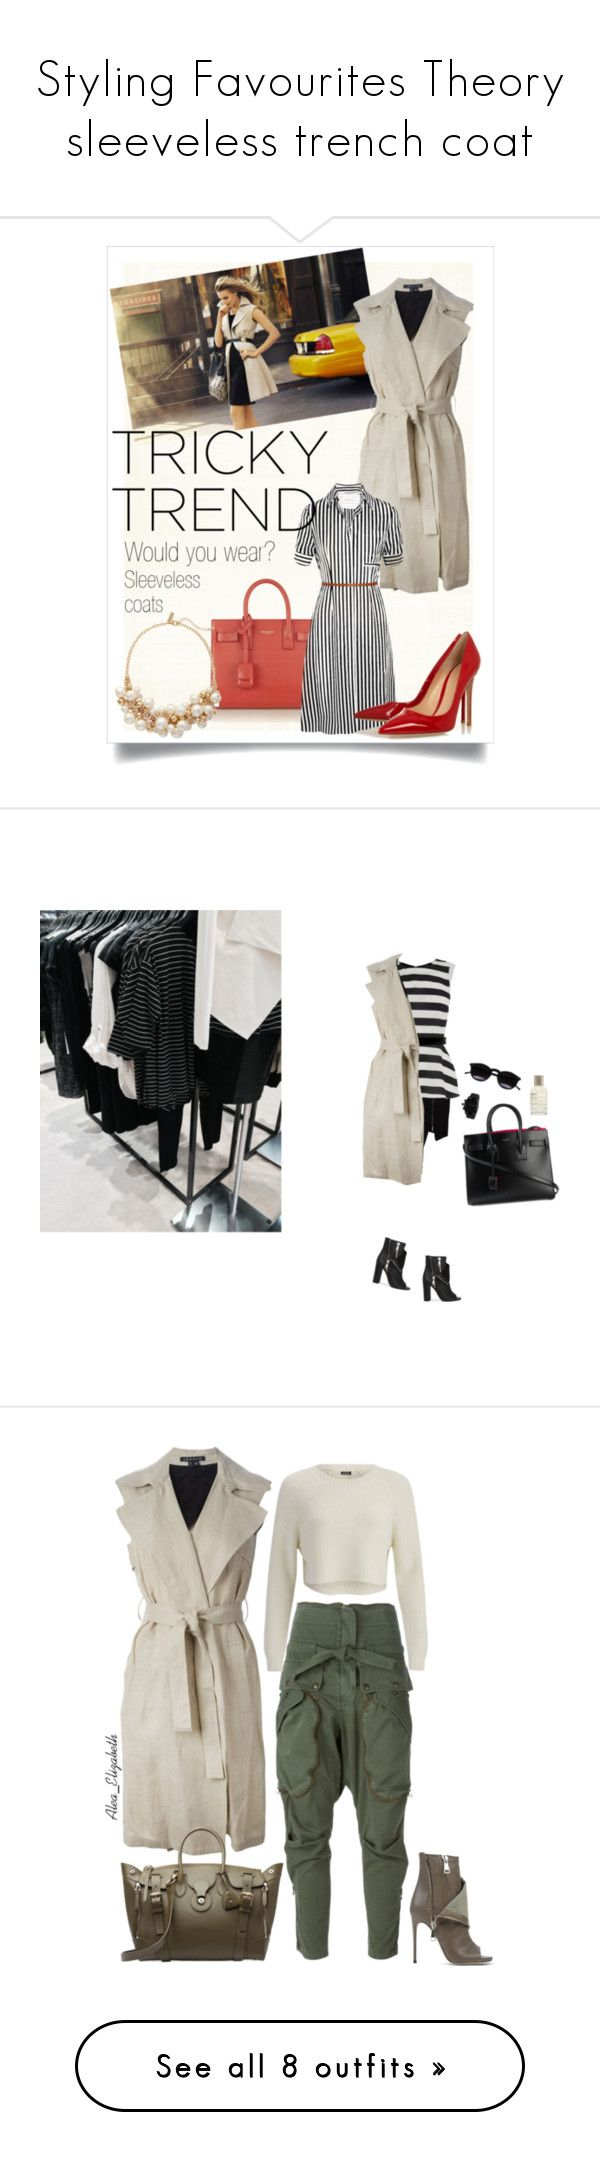 """""""Styling Favourites Theory sleeveless trench coat"""" by olgutieuse ❤ liked on Polyvore featuring outerwear, coats, jackets, vests, dresses, beige coat, sleeveless trench coats, sleeveless coats, beige trench coat and open front trench coat"""